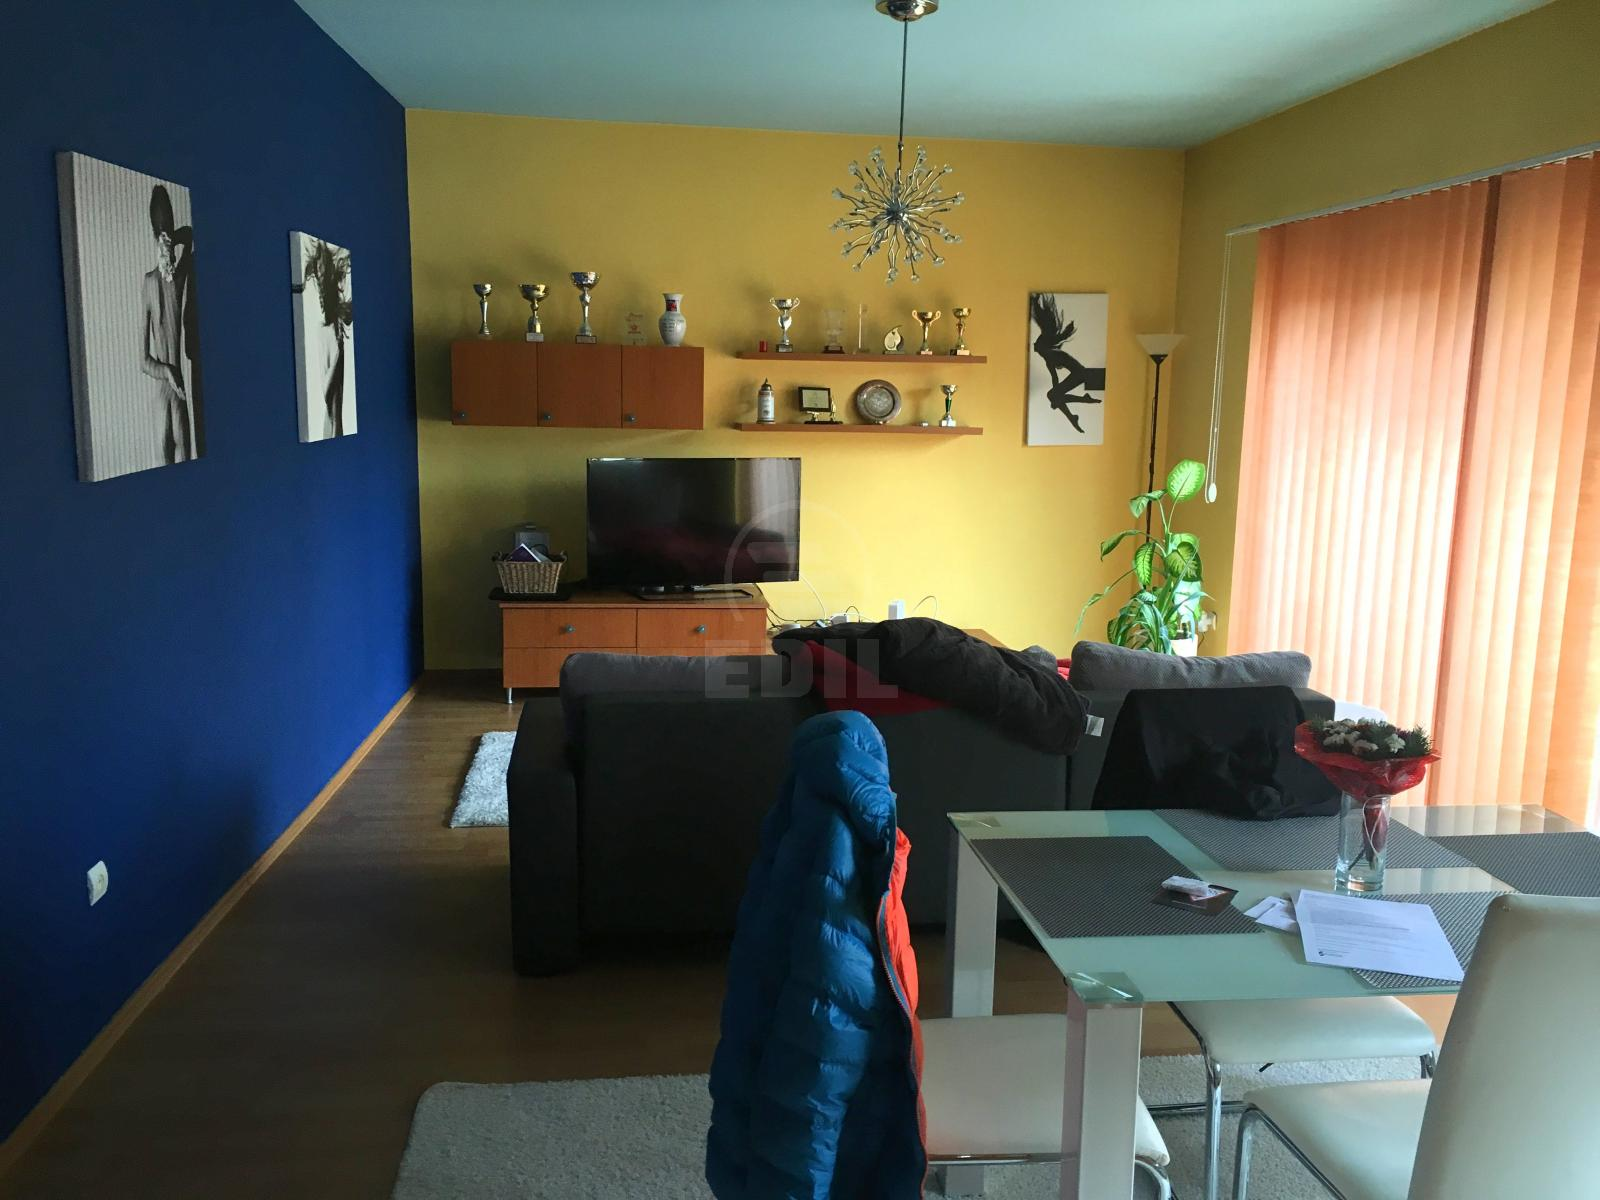 Apartment for sale 3 rooms, APCJ272831-4